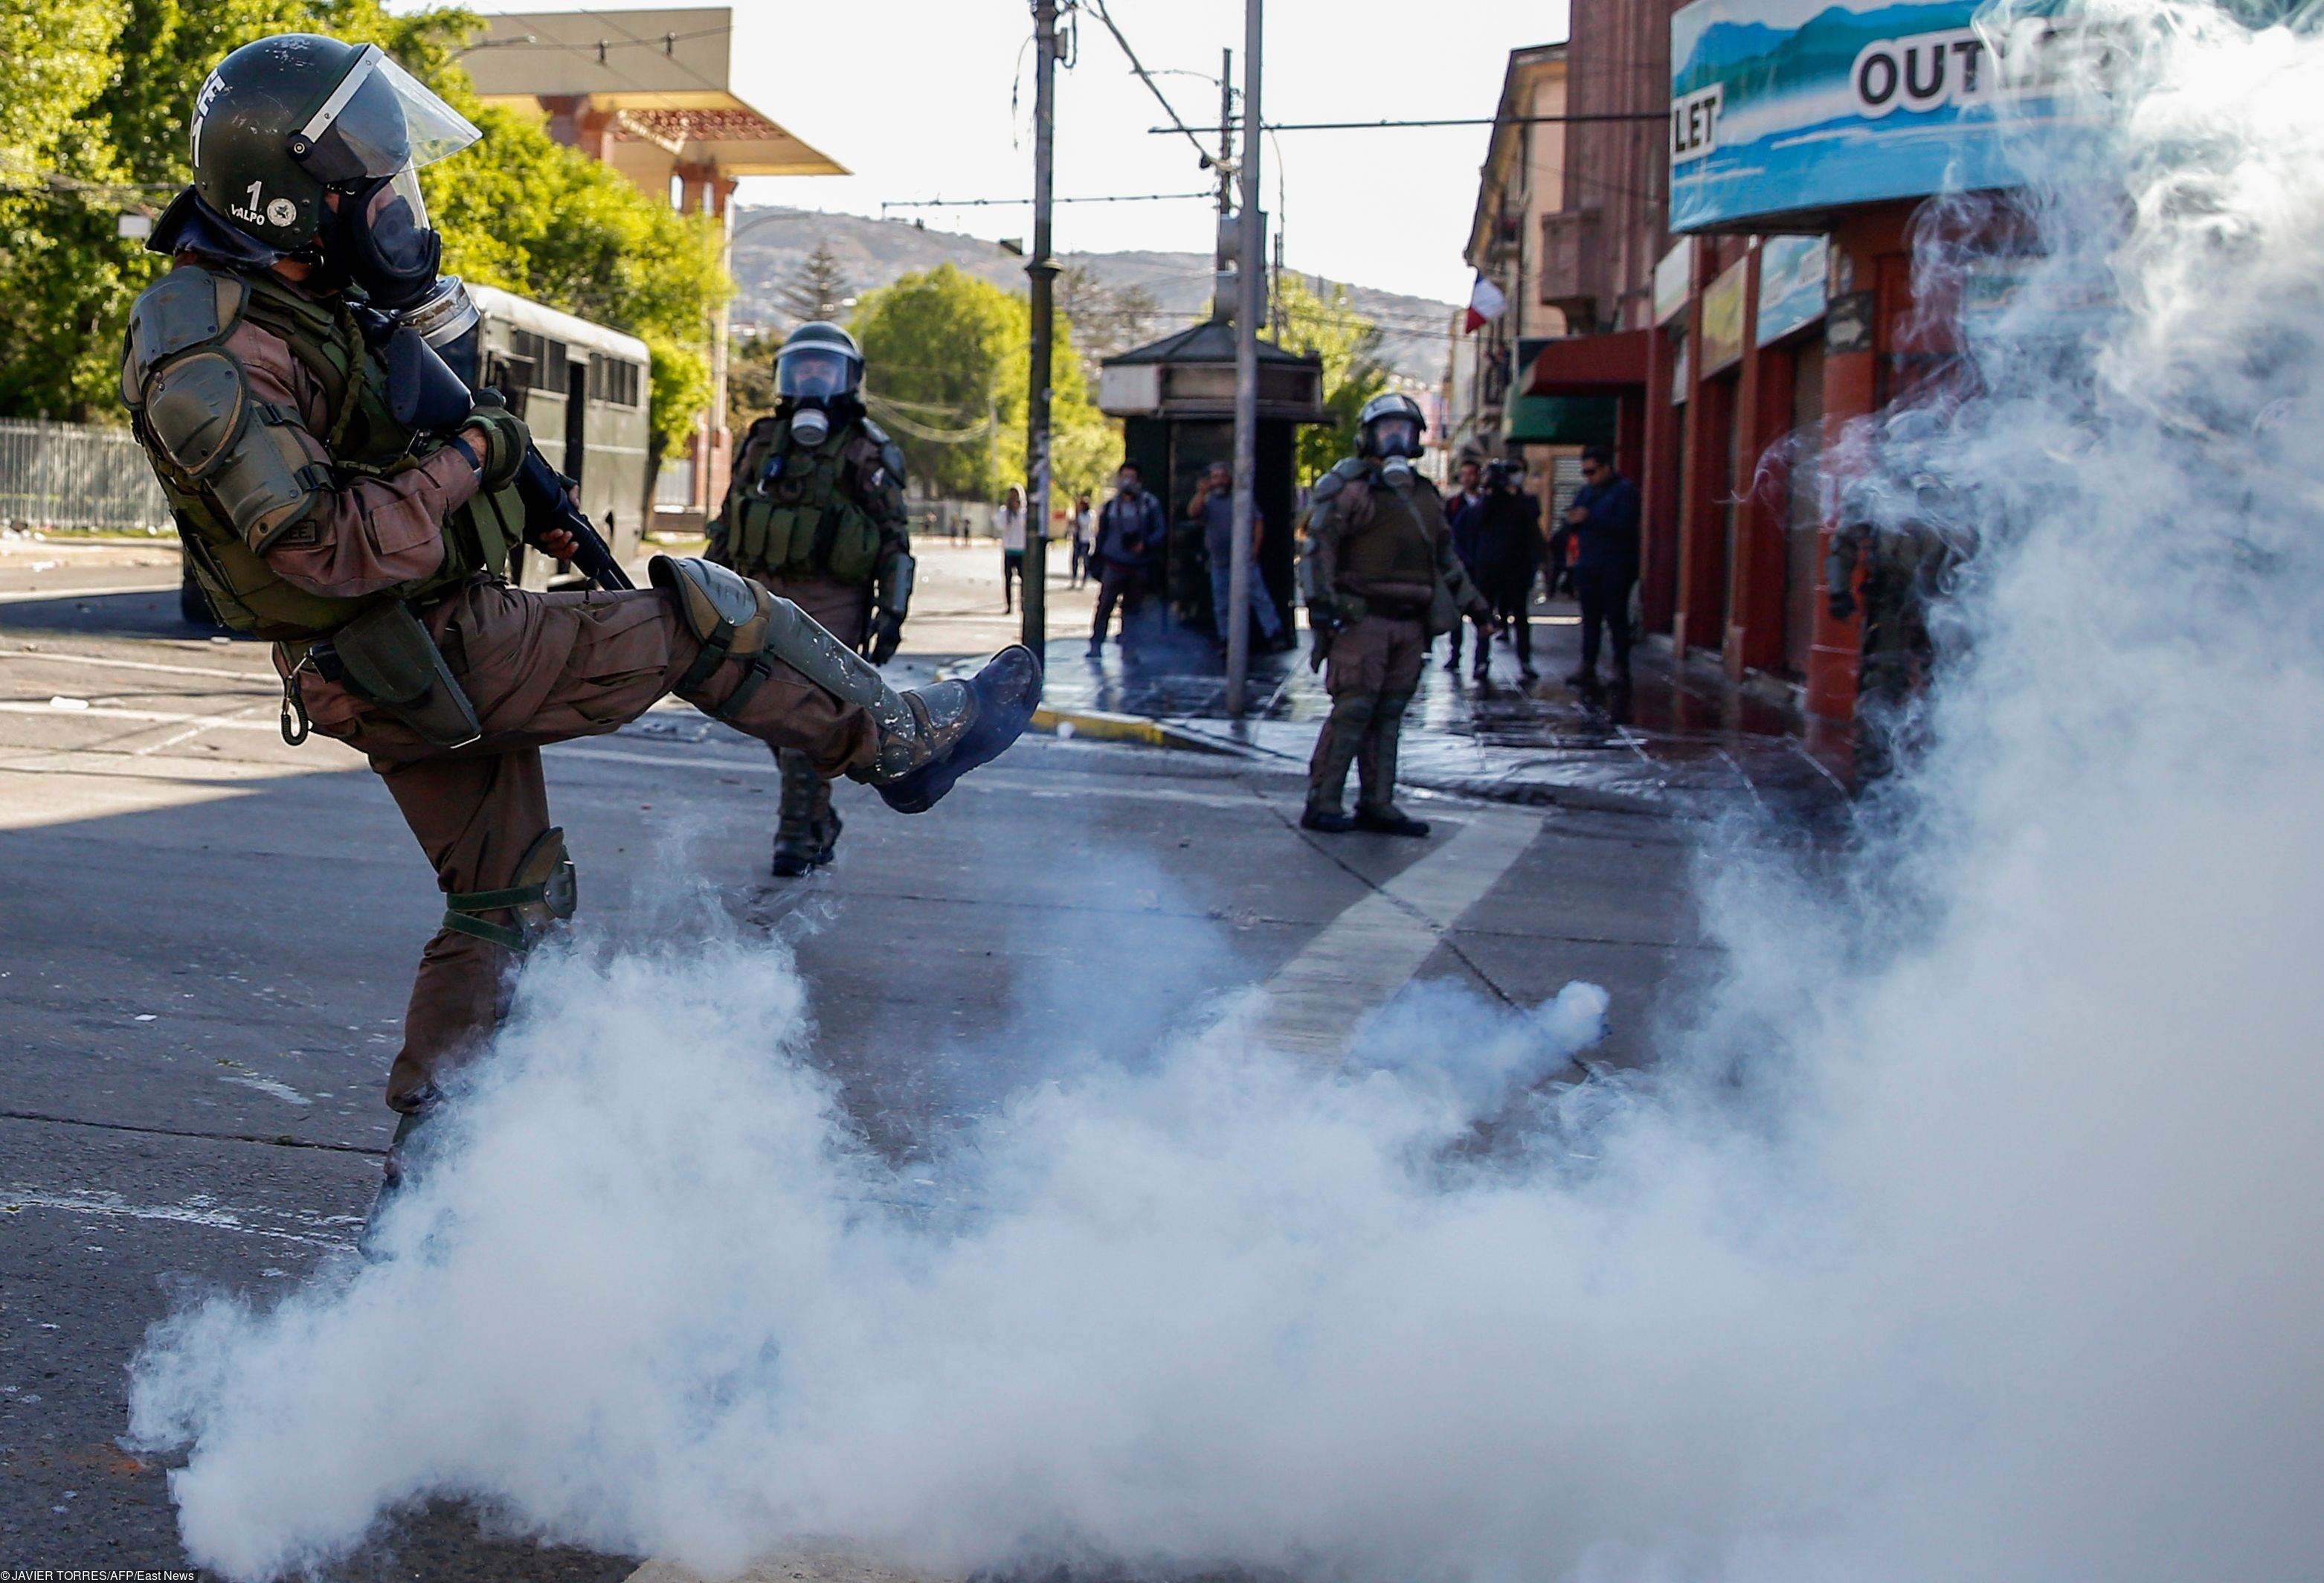 Riot policemen clash with demonstrators during protests in Valparaiso, Chile, on October 20, 2019. - Fresh clashes broke out in Chile's capital Santiago on Sunday after two people died when a supermarket was torched overnight as violent protests sparked by anger over economic conditions and social inequality raged into a third day.